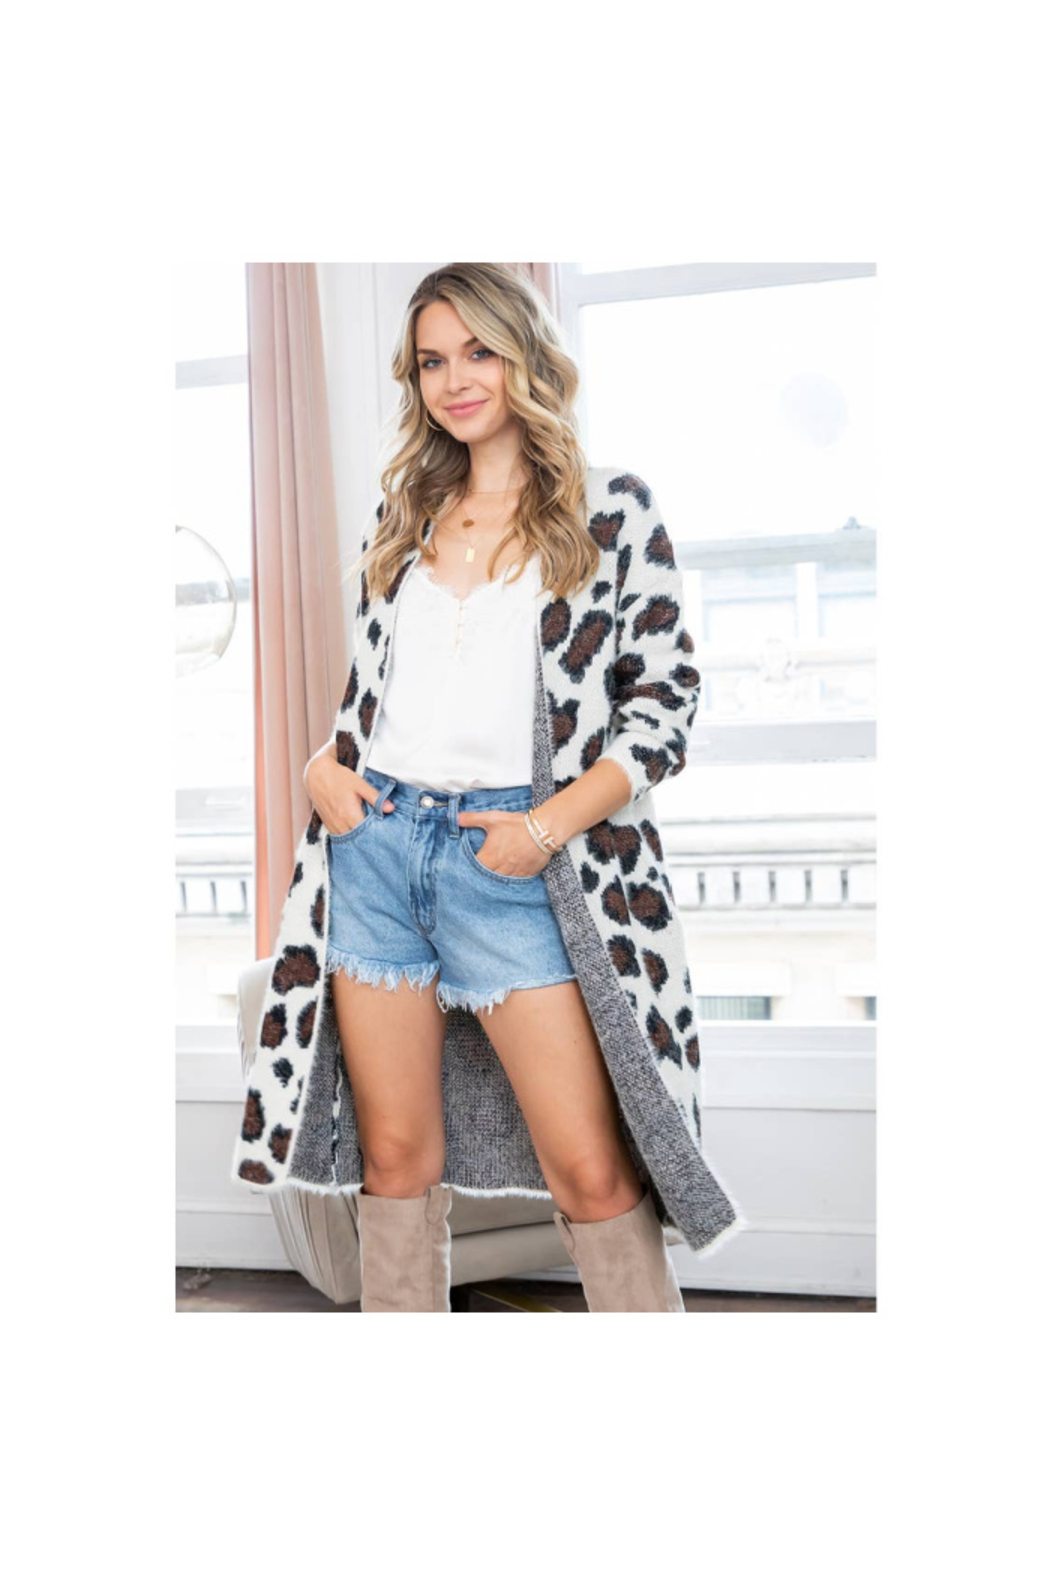 The Birds Nest LEOPARD PRINT CARDIGAN - Front Cropped Image